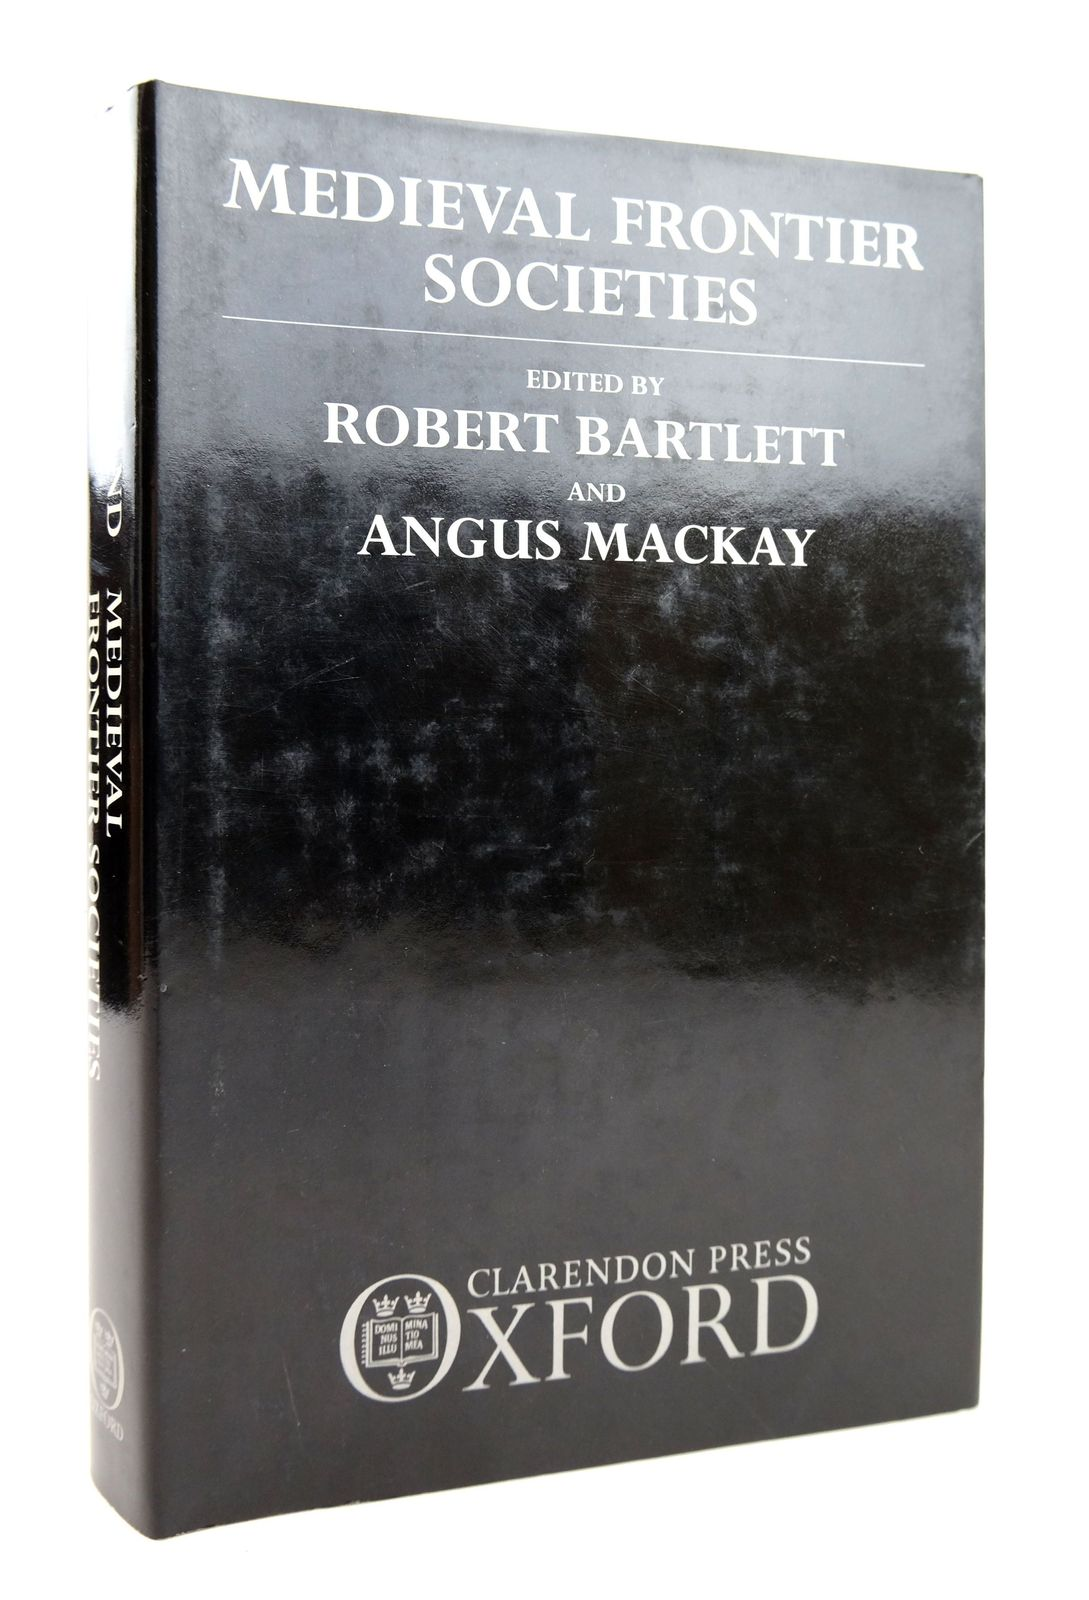 Photo of MEDIEVAL FRONTIER SOCIETIES written by Bartlett, Robert Mackay, Angus published by Clarendon Press (STOCK CODE: 1818871)  for sale by Stella & Rose's Books